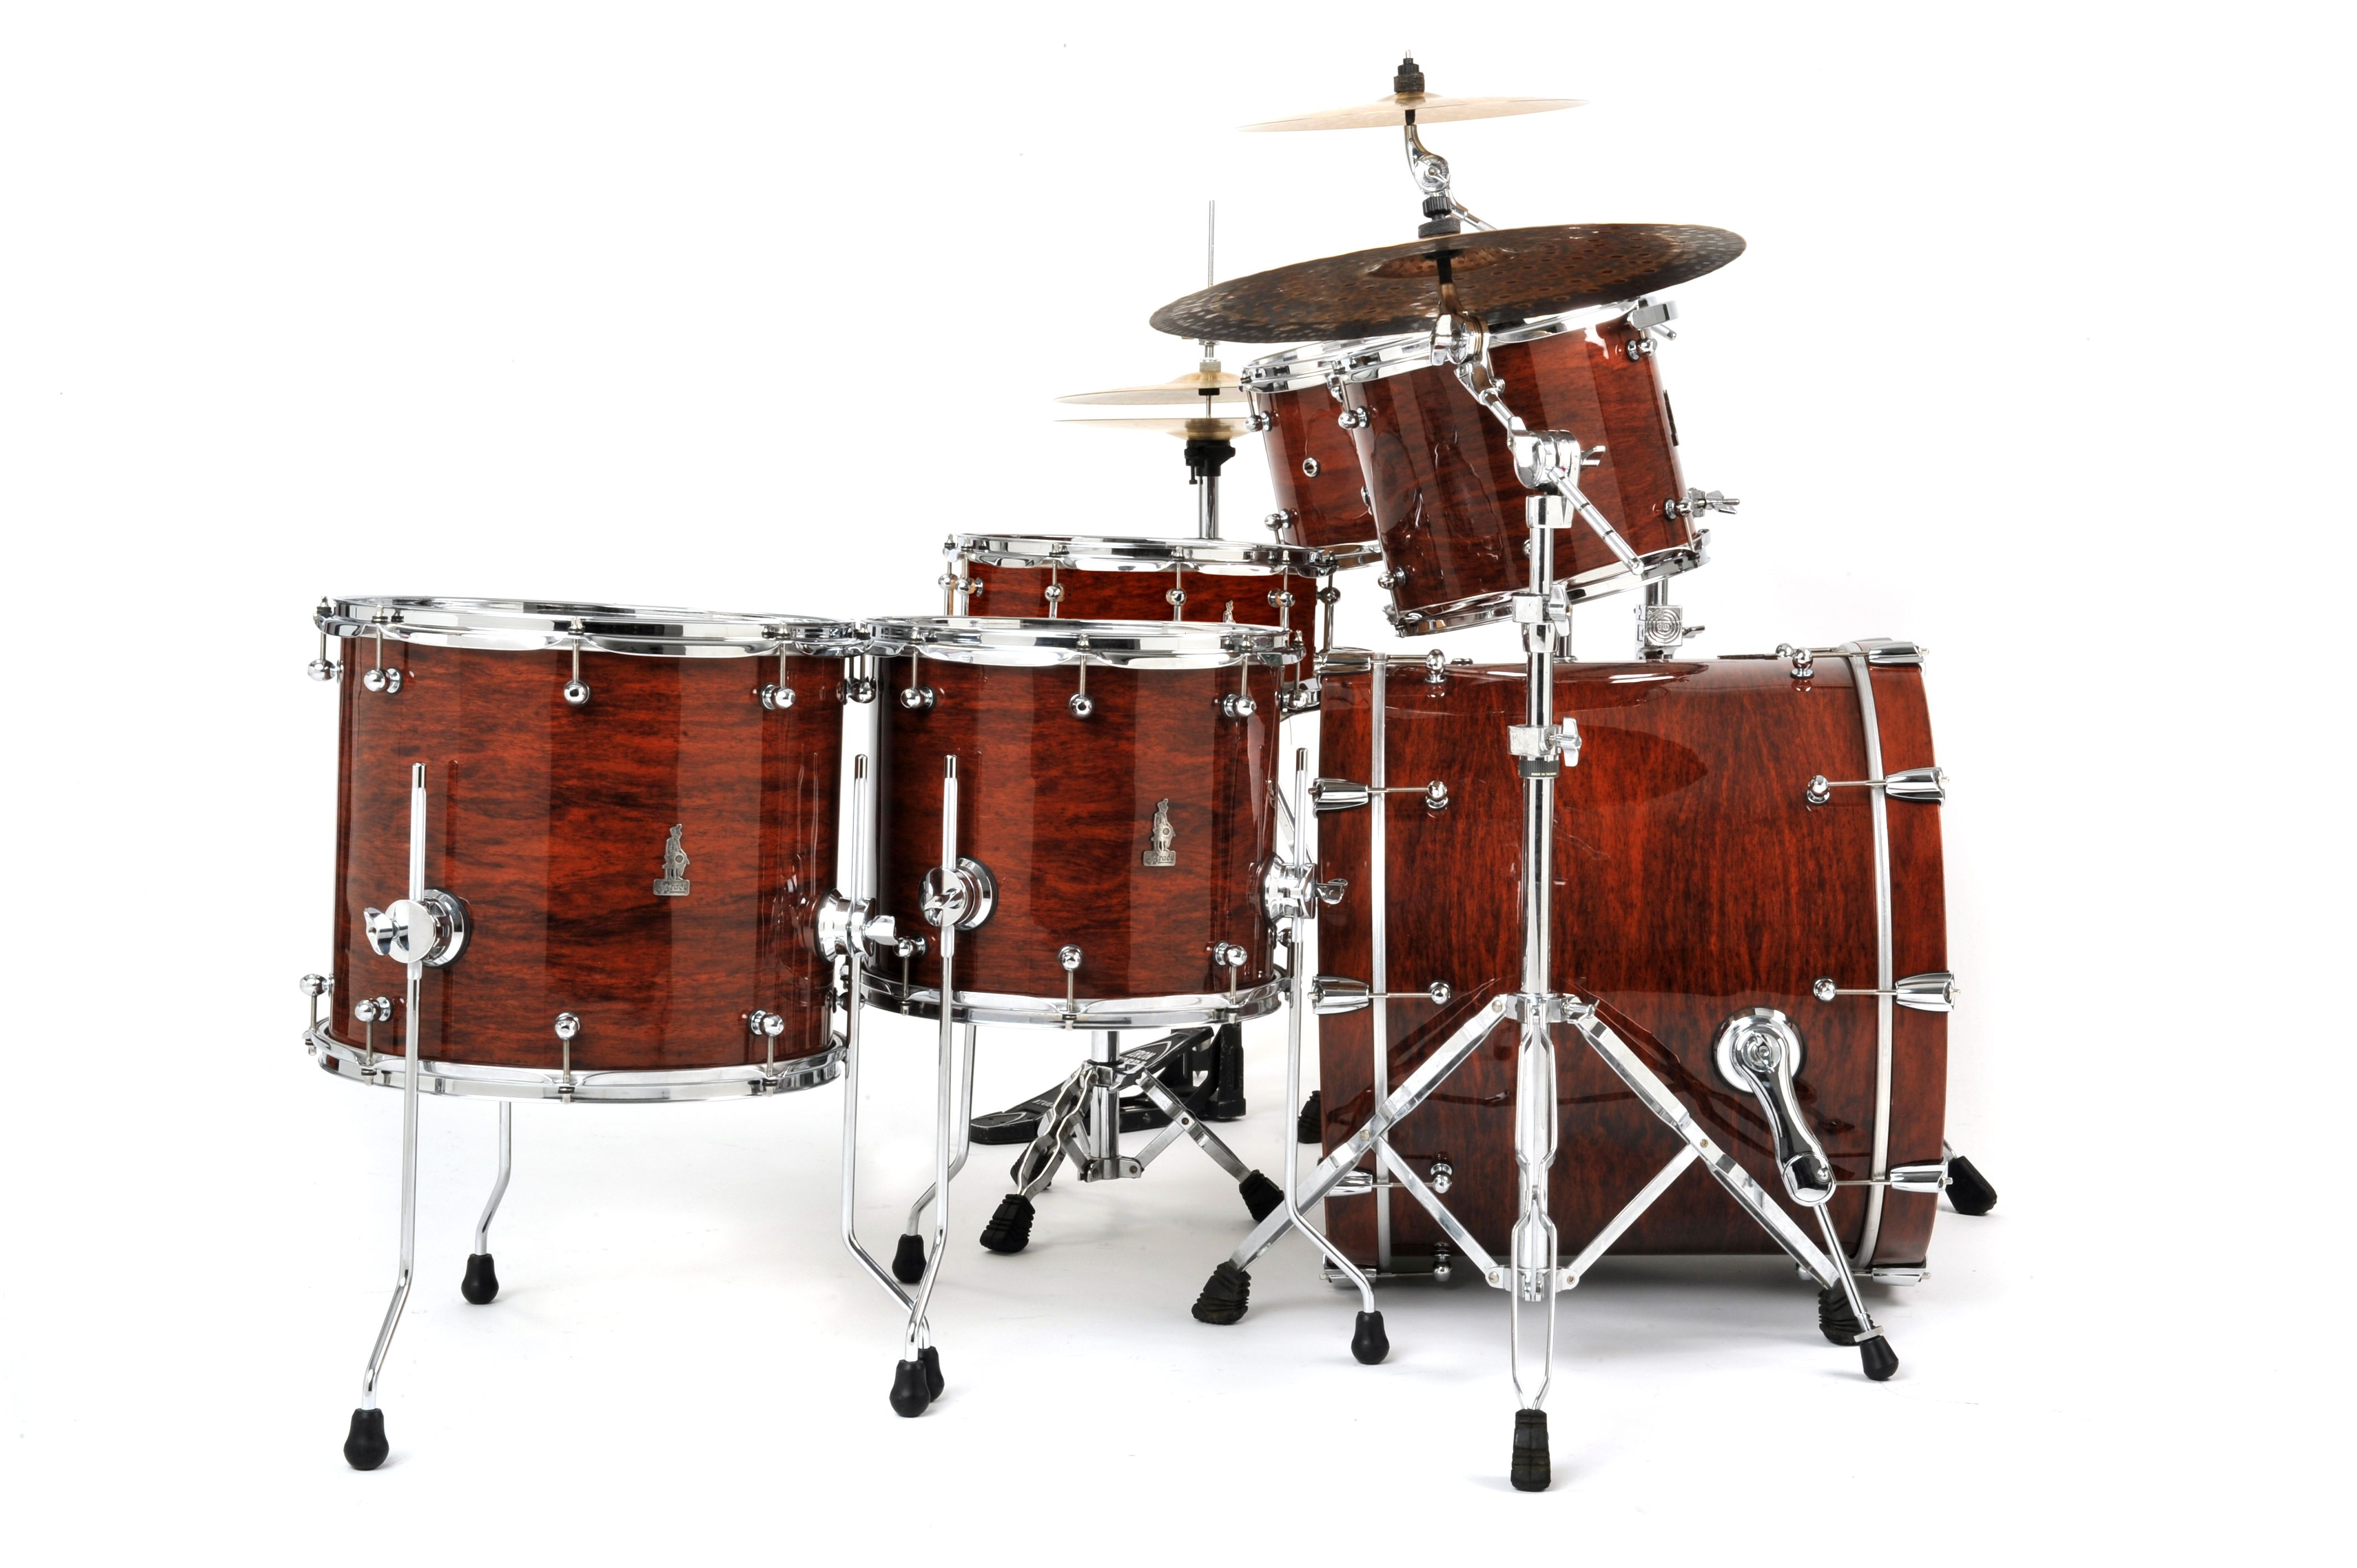 Brady Jarrah Ply Drum Kit Natural Gloss Finish Drums Percussion Instruments Drums Drum Kits